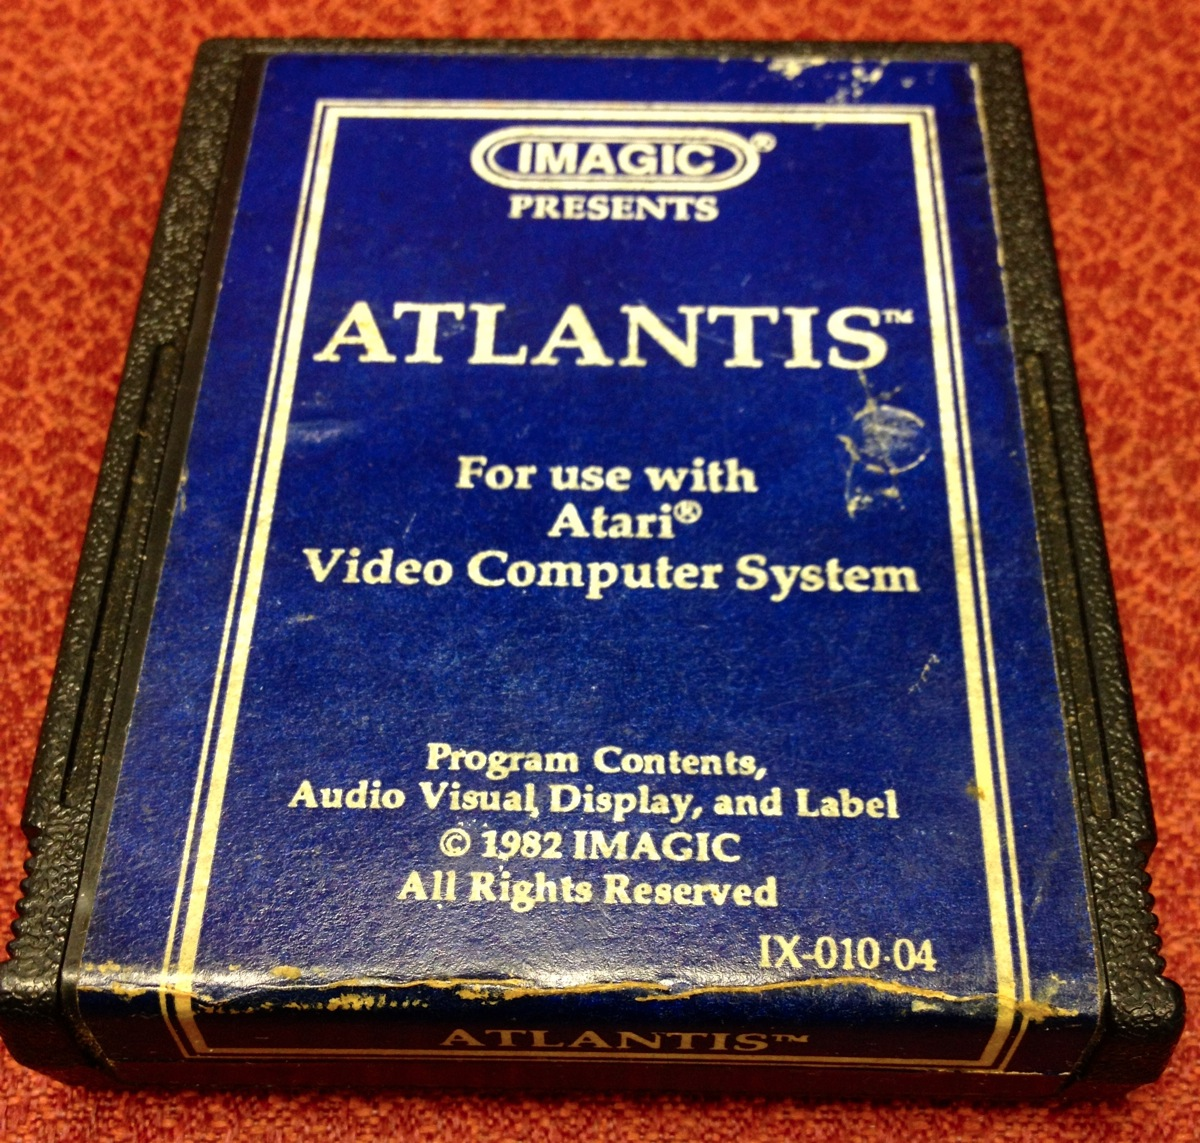 imagic-atlantis-blue